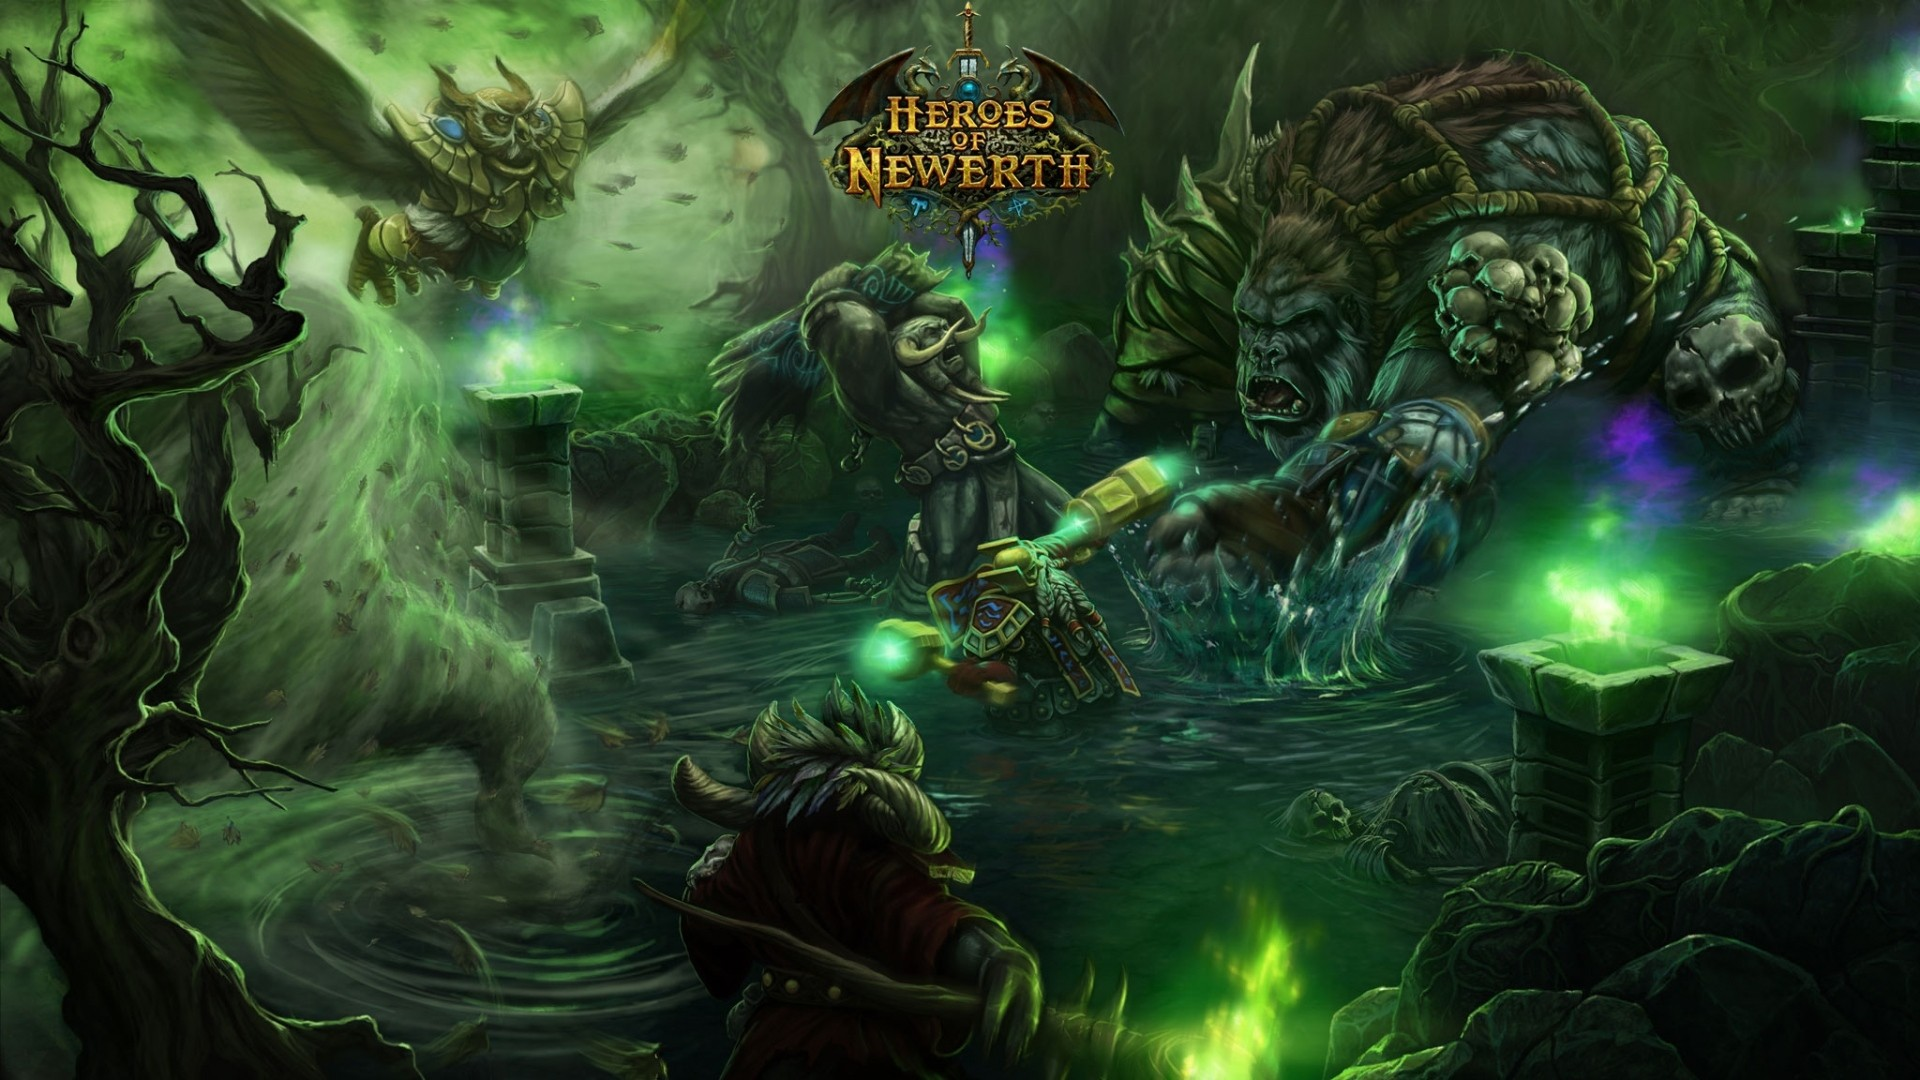 World Of Warcraft Backgrounds 1920x1080: 29+ WOW Wallpapers ·① Download Free Amazing Full HD